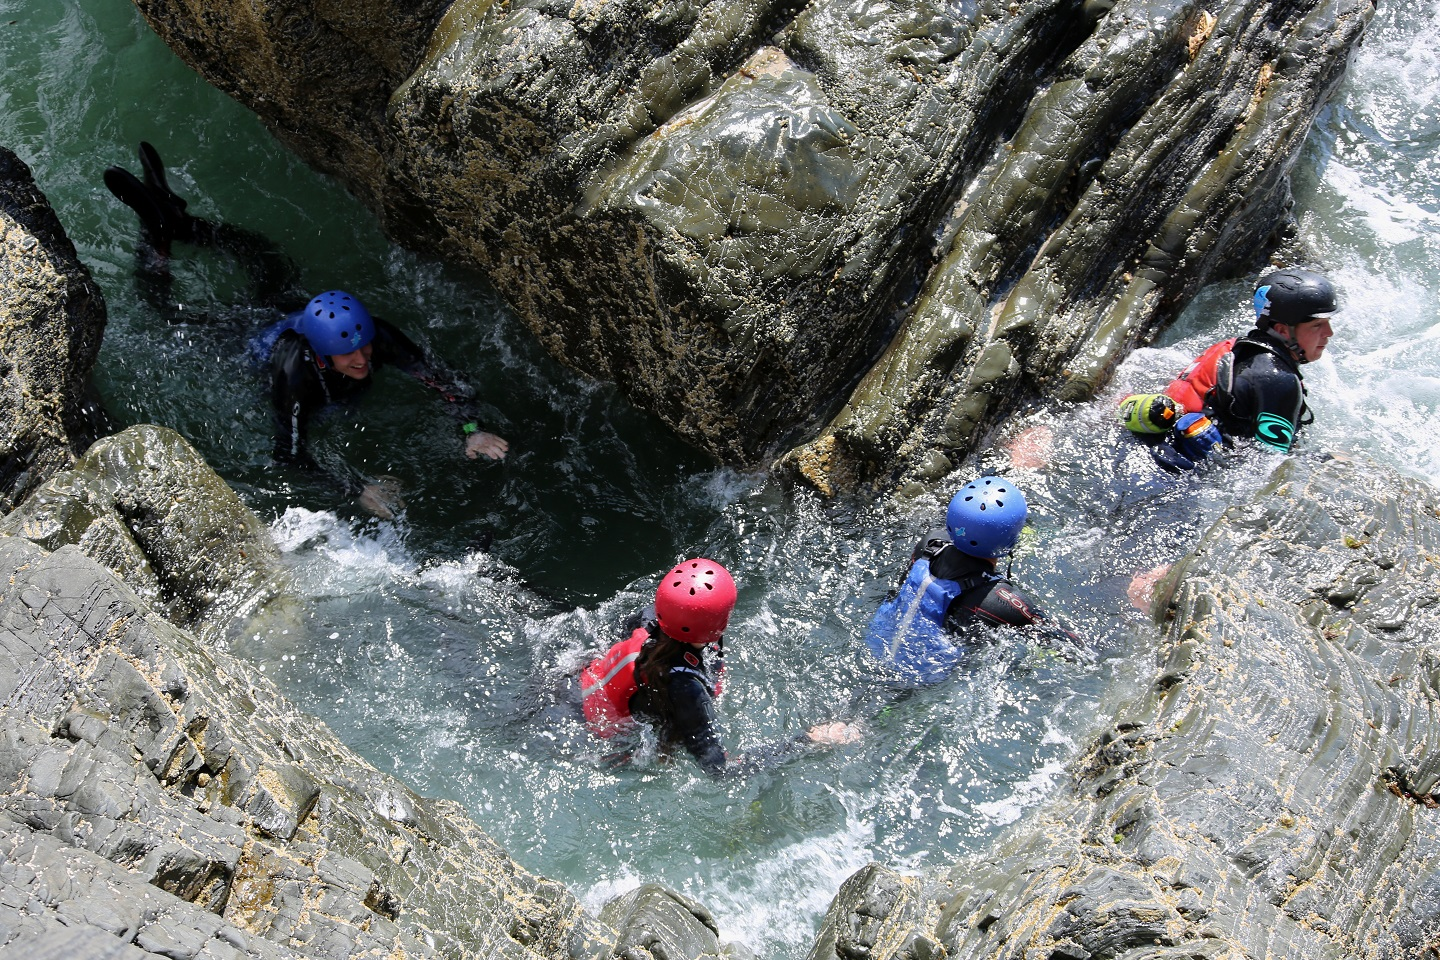 Participants swimming through a gap during a Coasteering experience, Isle of Man